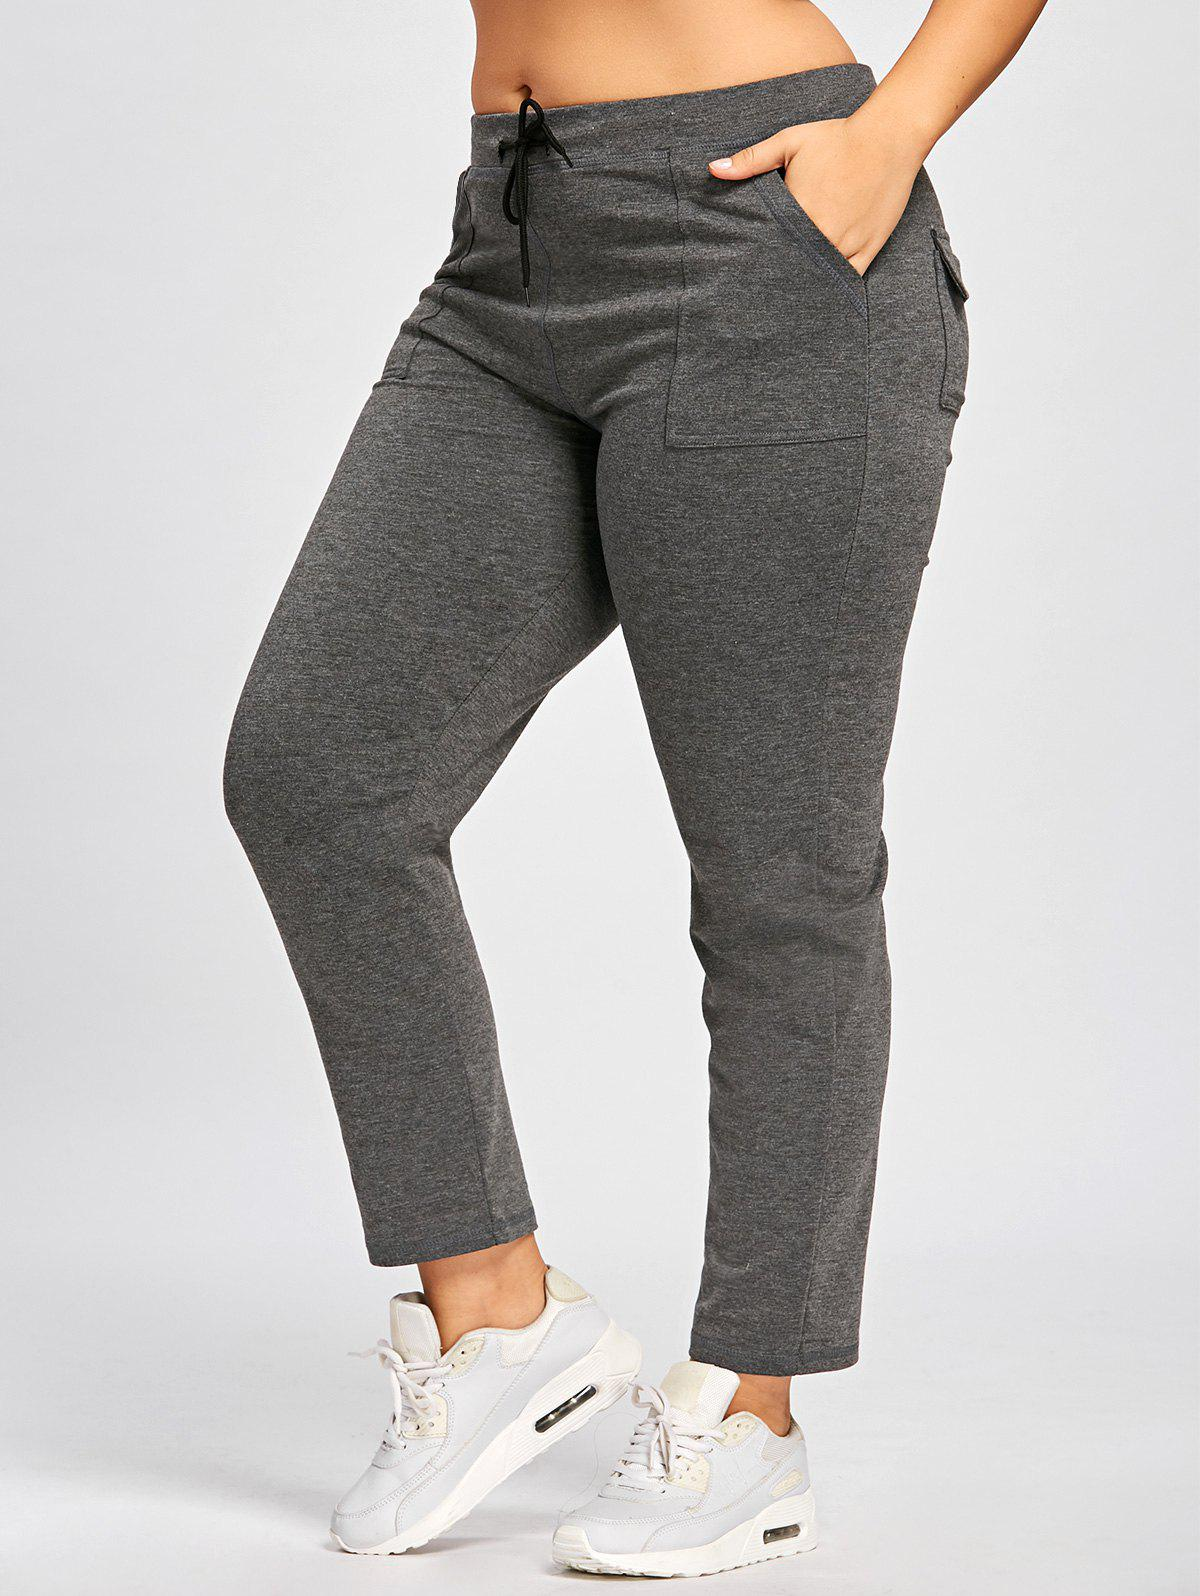 Casual Plus Size Drawstring PantsWOMEN<br><br>Size: 4XL; Color: SMOKY GRAY; Style: Casual; Length: Normal; Material: Polyester,Spandex; Fit Type: Regular; Waist Type: Mid; Closure Type: Drawstring; Pattern Type: Solid; Pant Style: Straight; Weight: 0.4200kg; Package Contents: 1 x Pants;